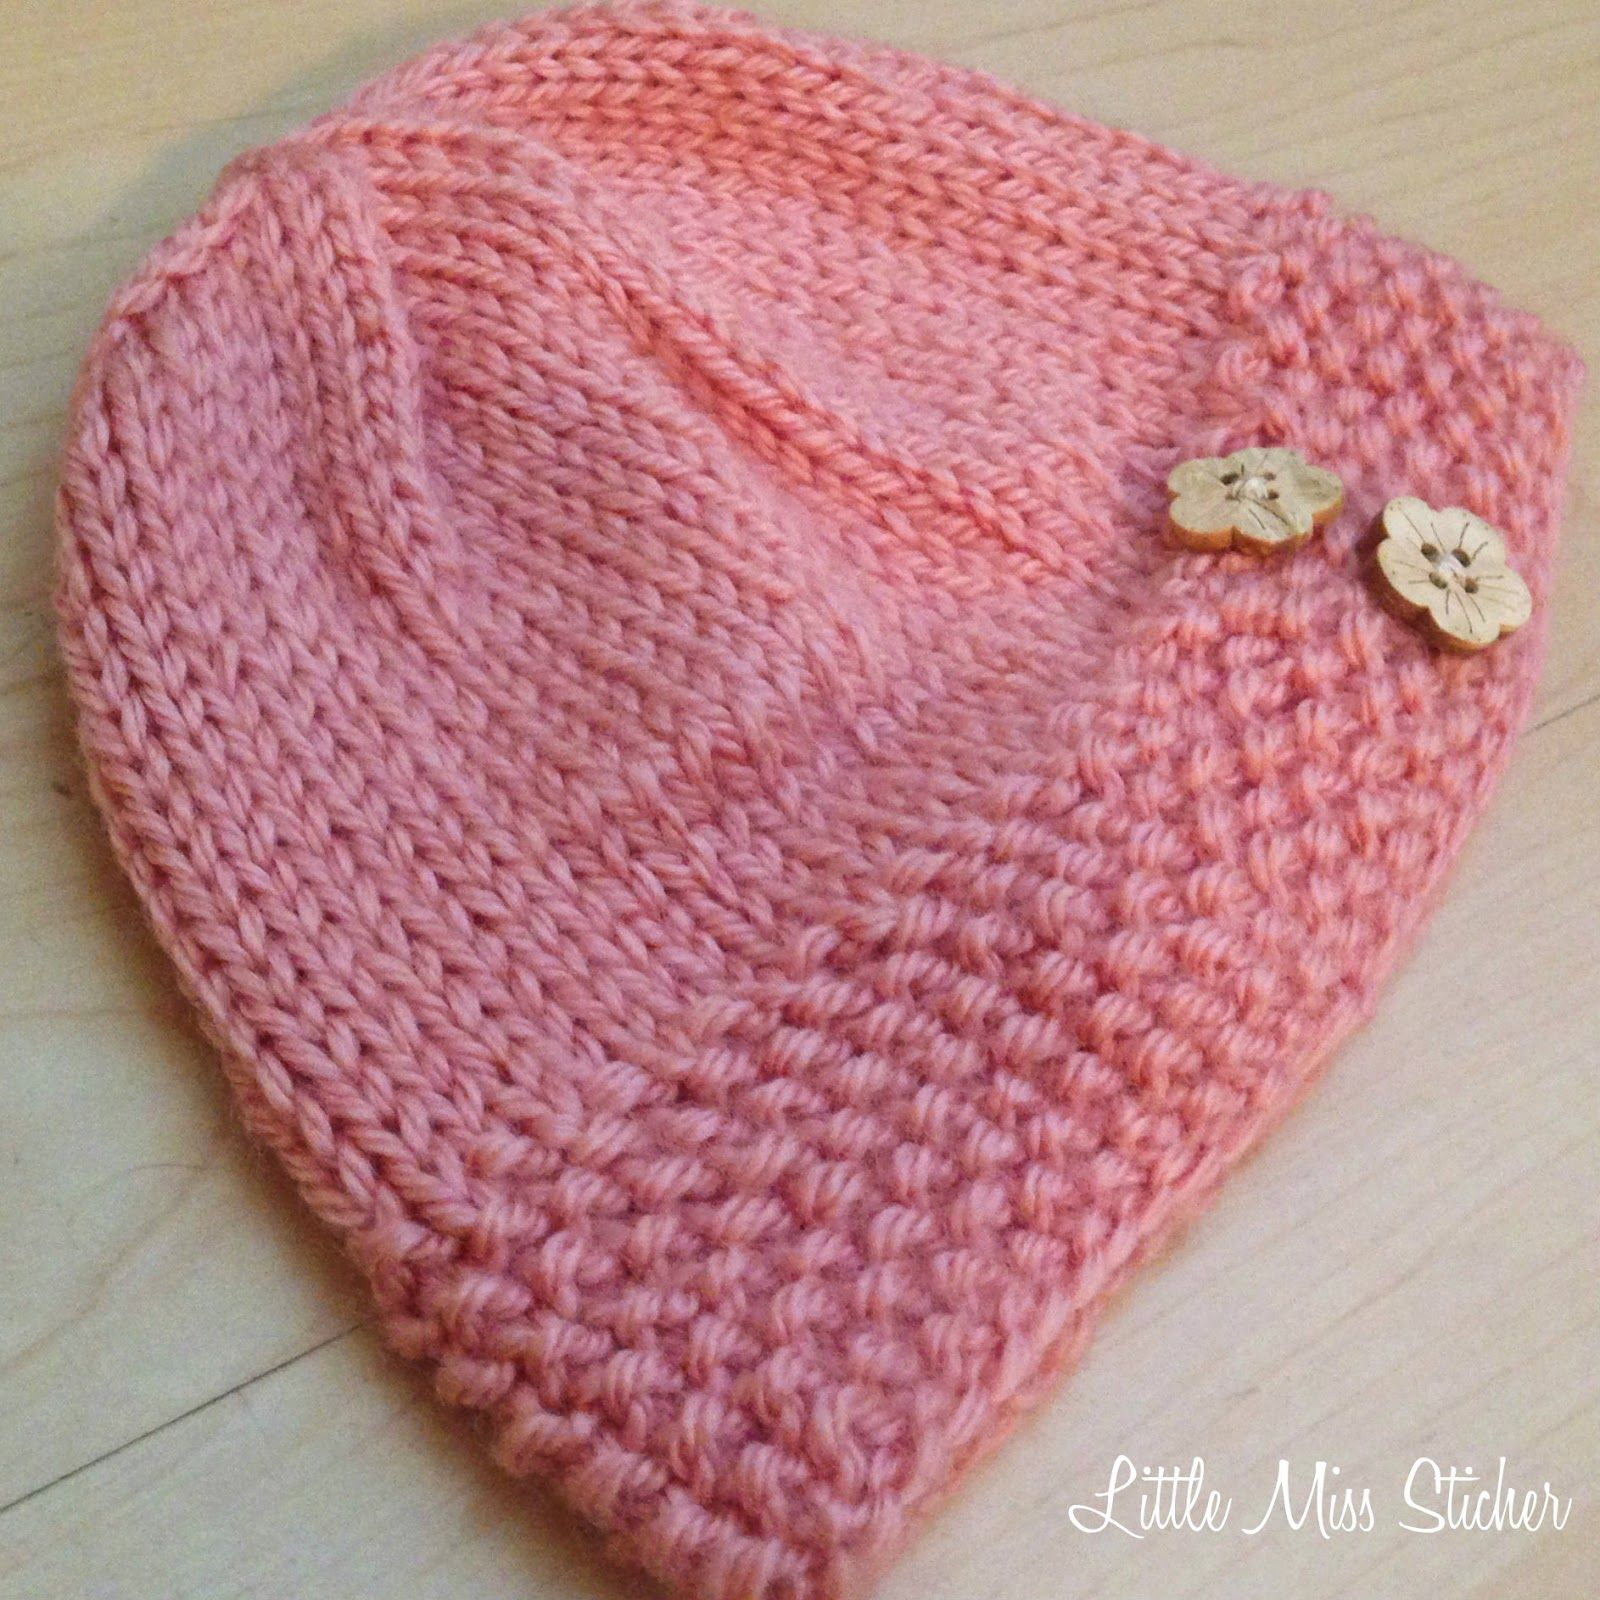 75ee20f0fd8 Adorable baby hat pattern! It s free too!  knitting  baby